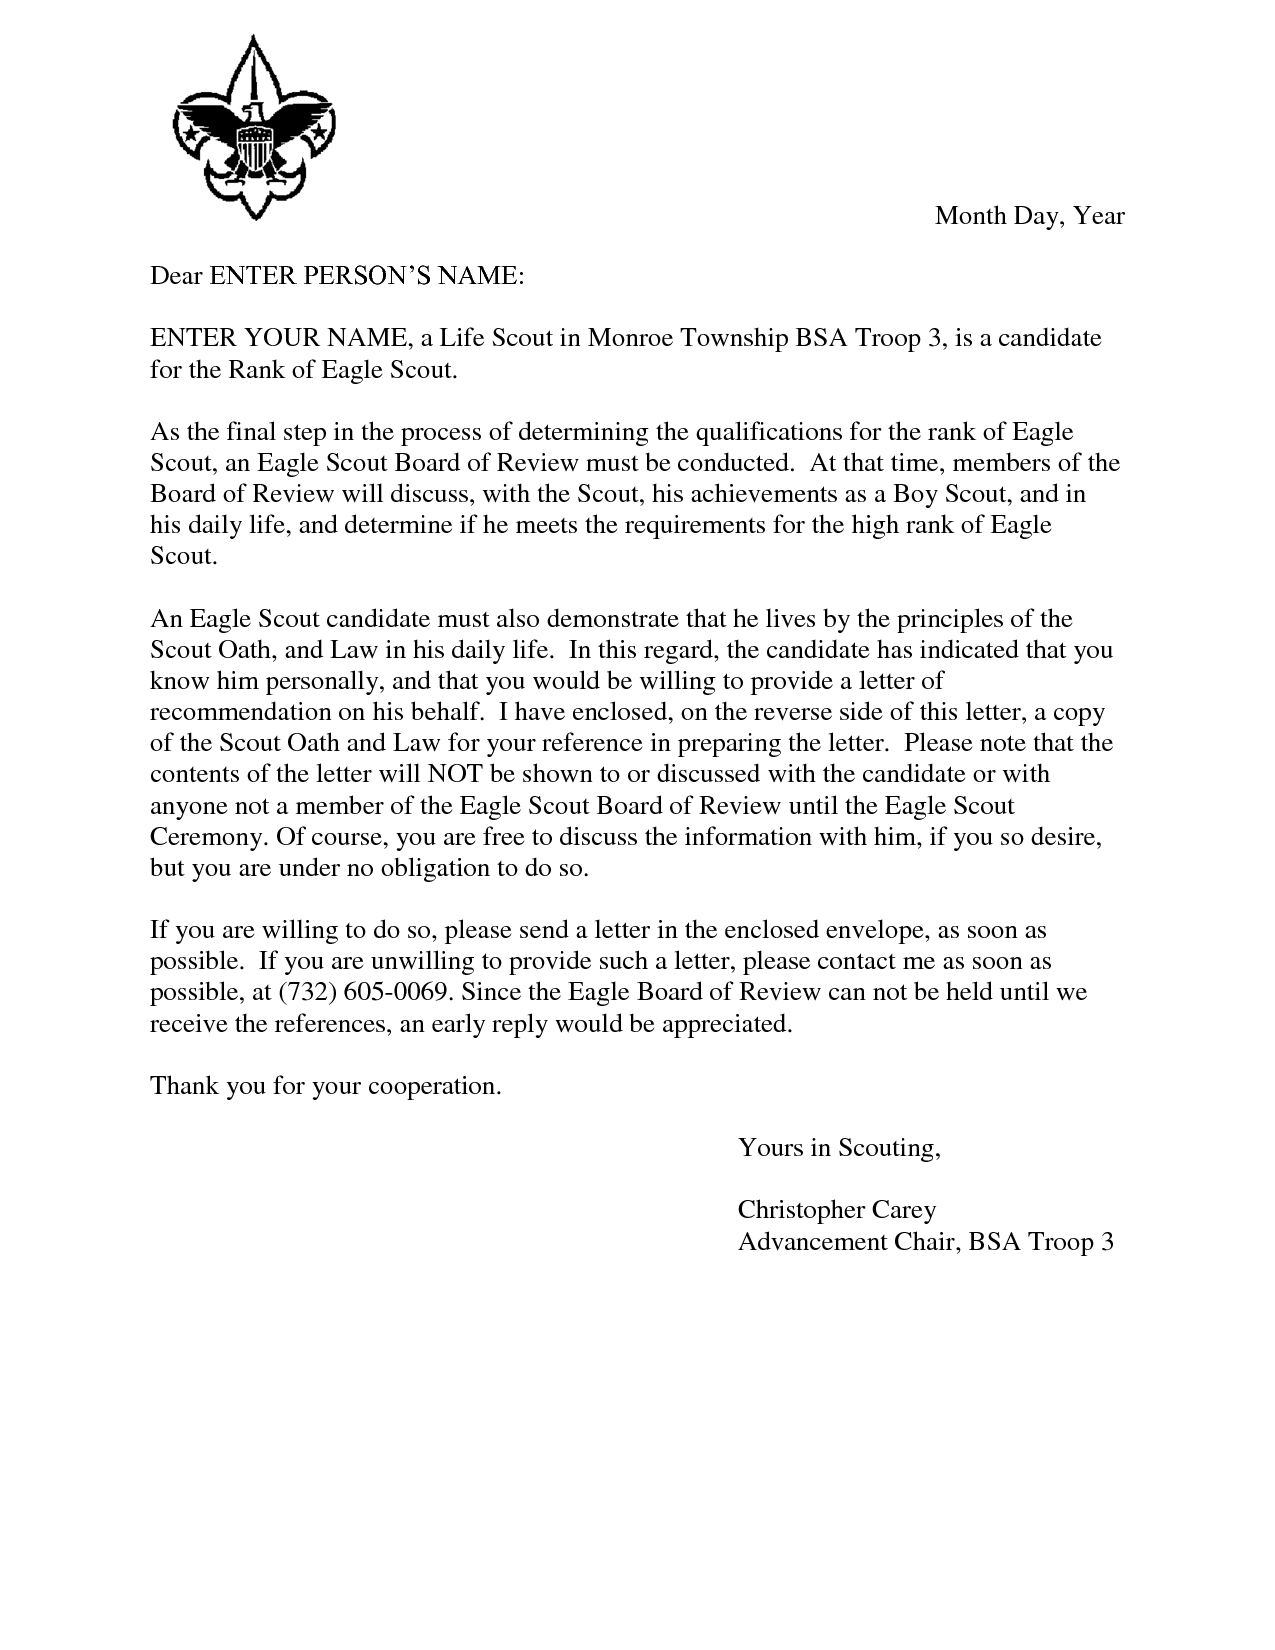 eagle scout recommendation letter template Collection-Eagle Scout Reference Request Sample Letter DOC 7 by Hfr990Q TGQFAGp7 9-a